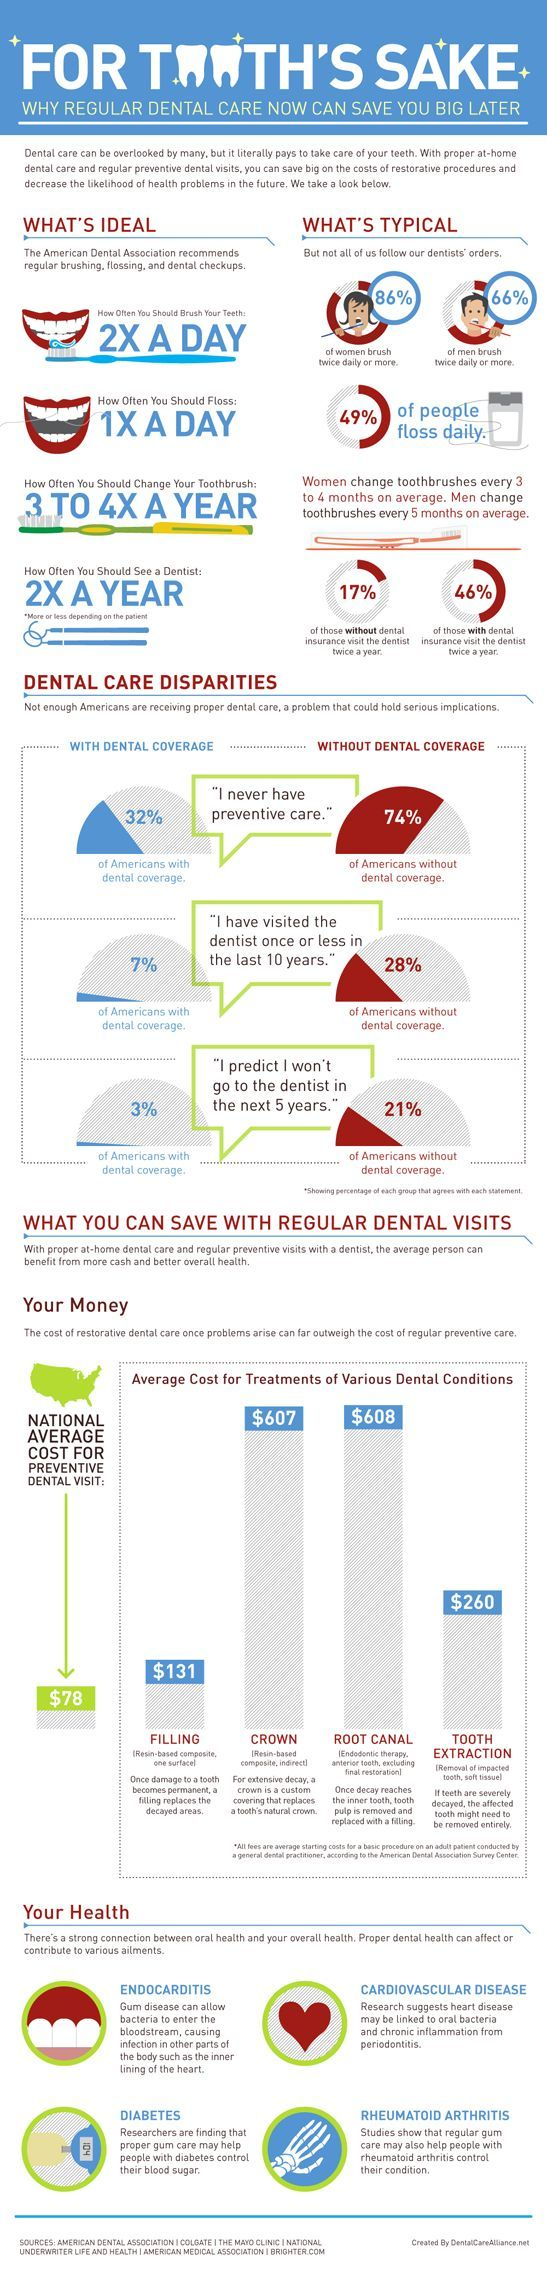 Our Winchester pediatric dentist shares information about how preventive dental care and proper at home care can save you money.  Contact us to schedule your next dental visit today: http://valleysmilesva.com/